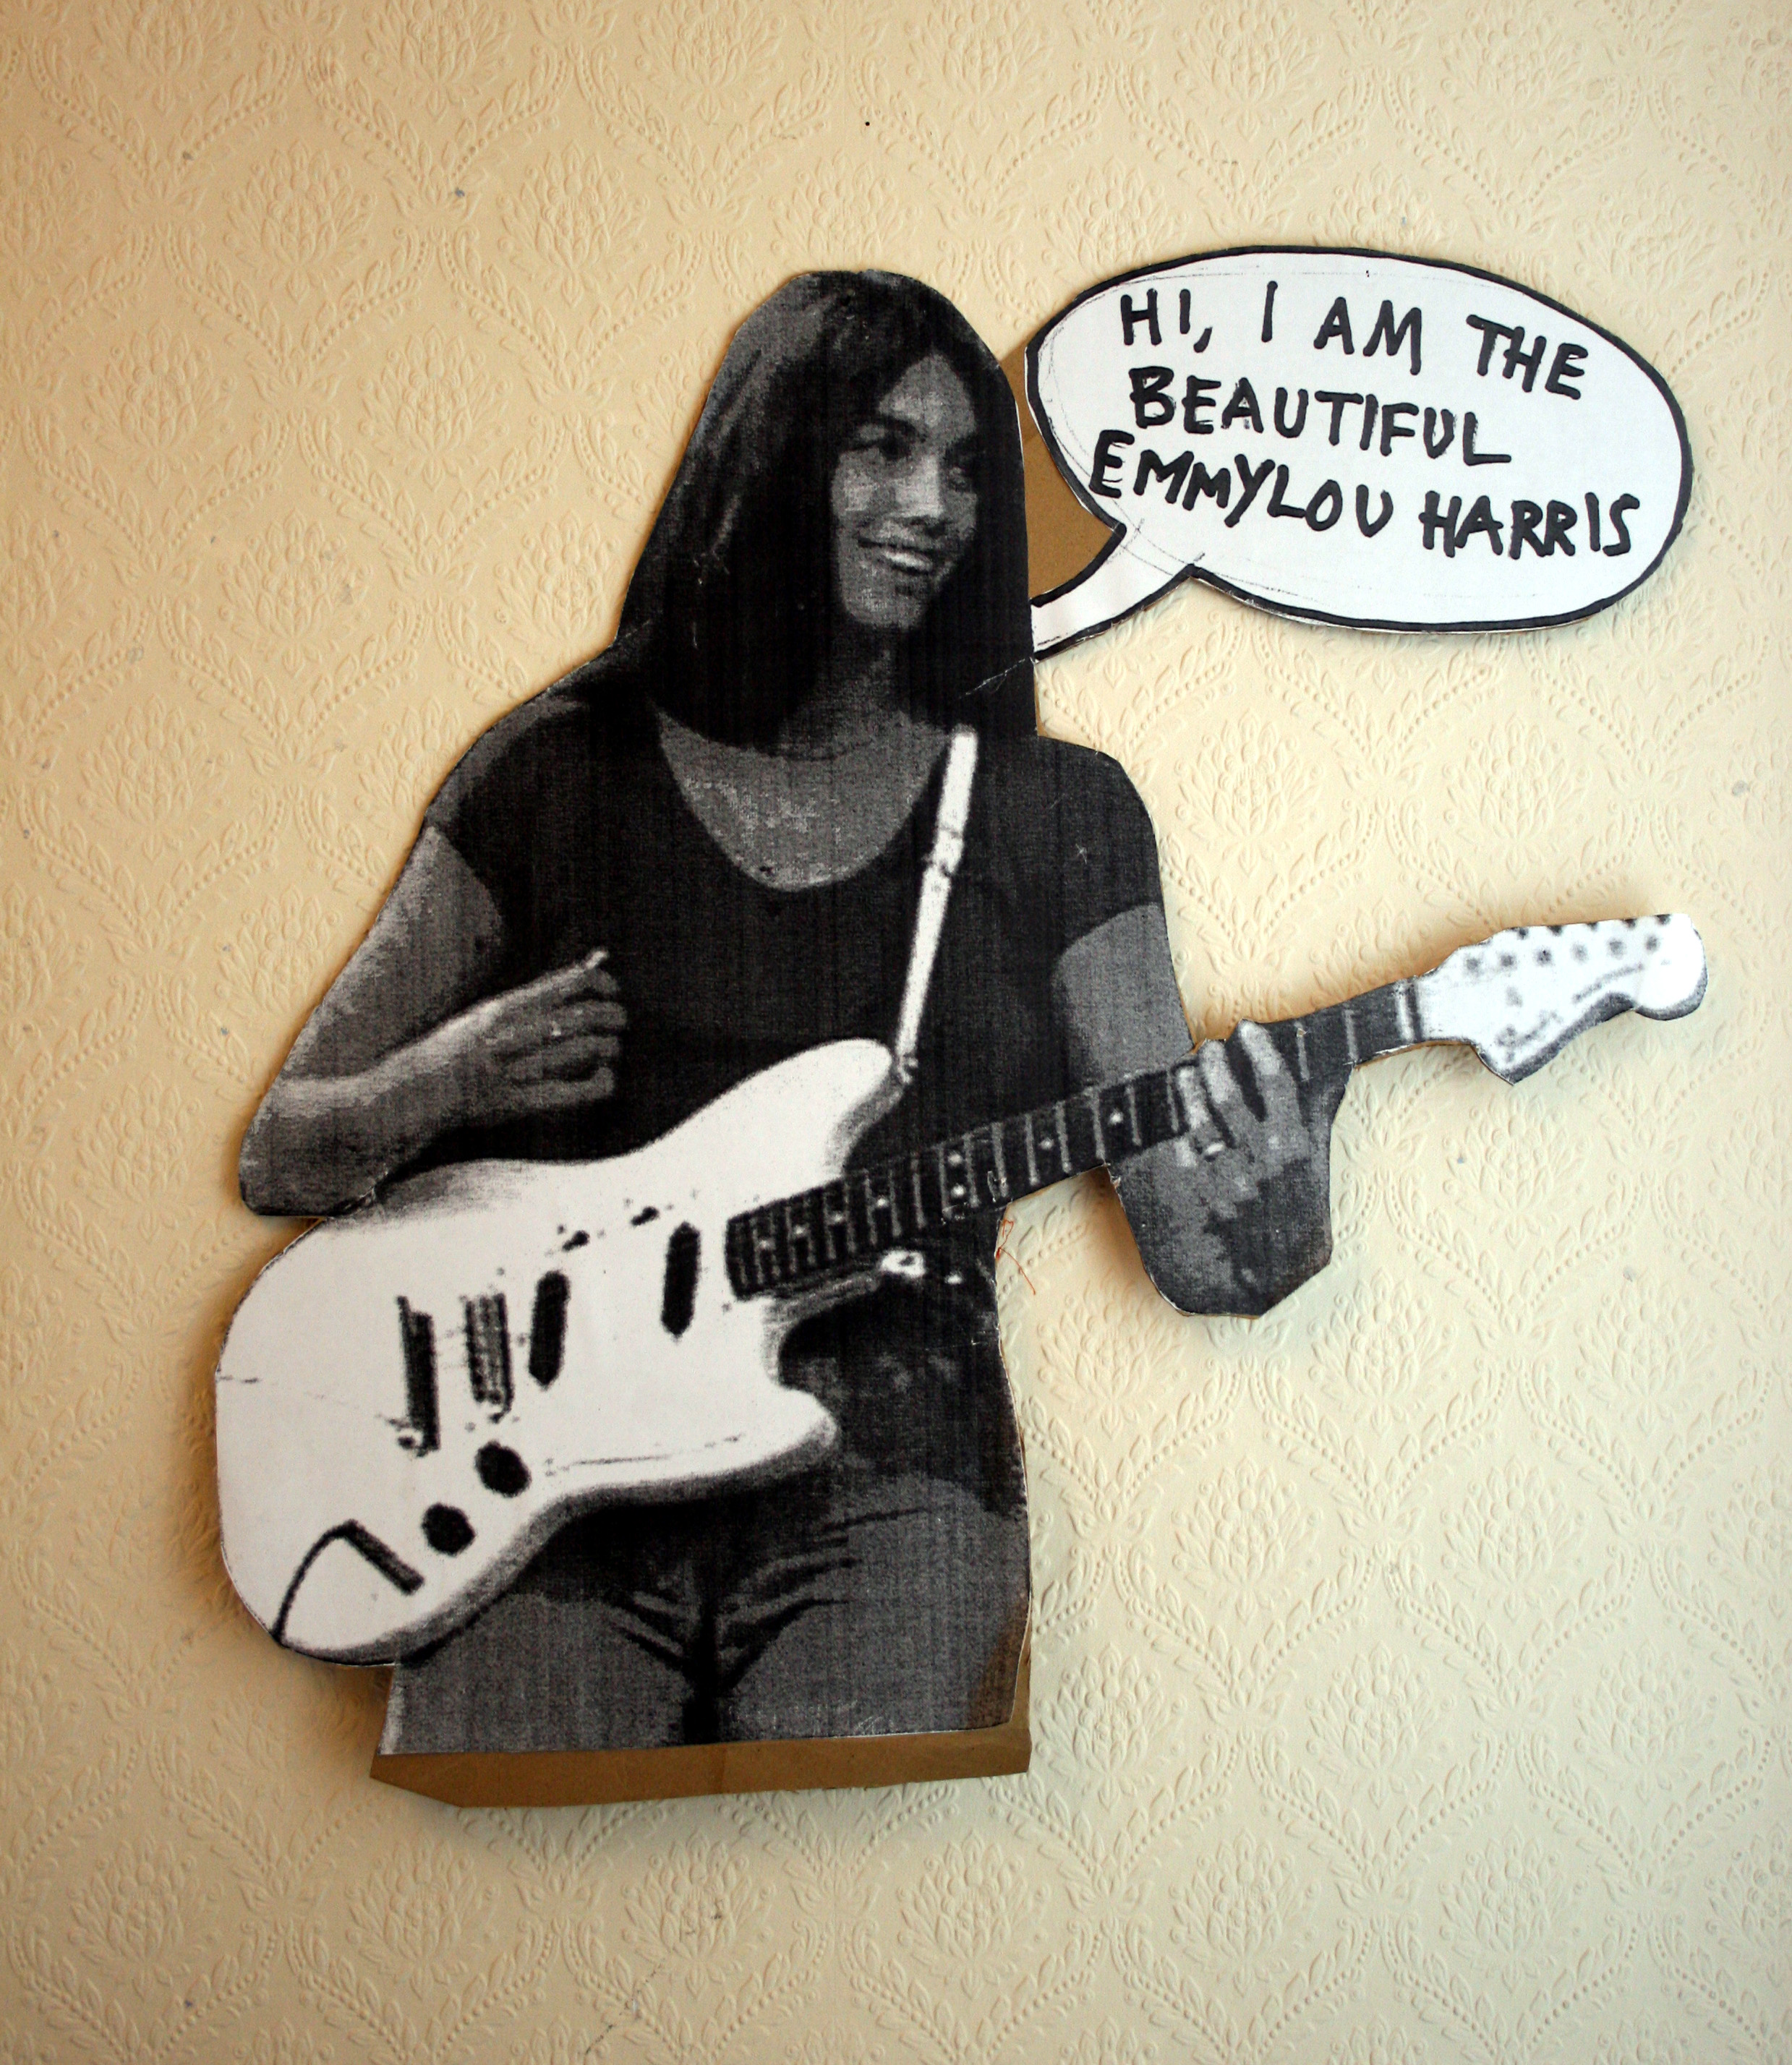 Randan Discotheque & The Cardboard Cut-out Band (Emmylou Harris)